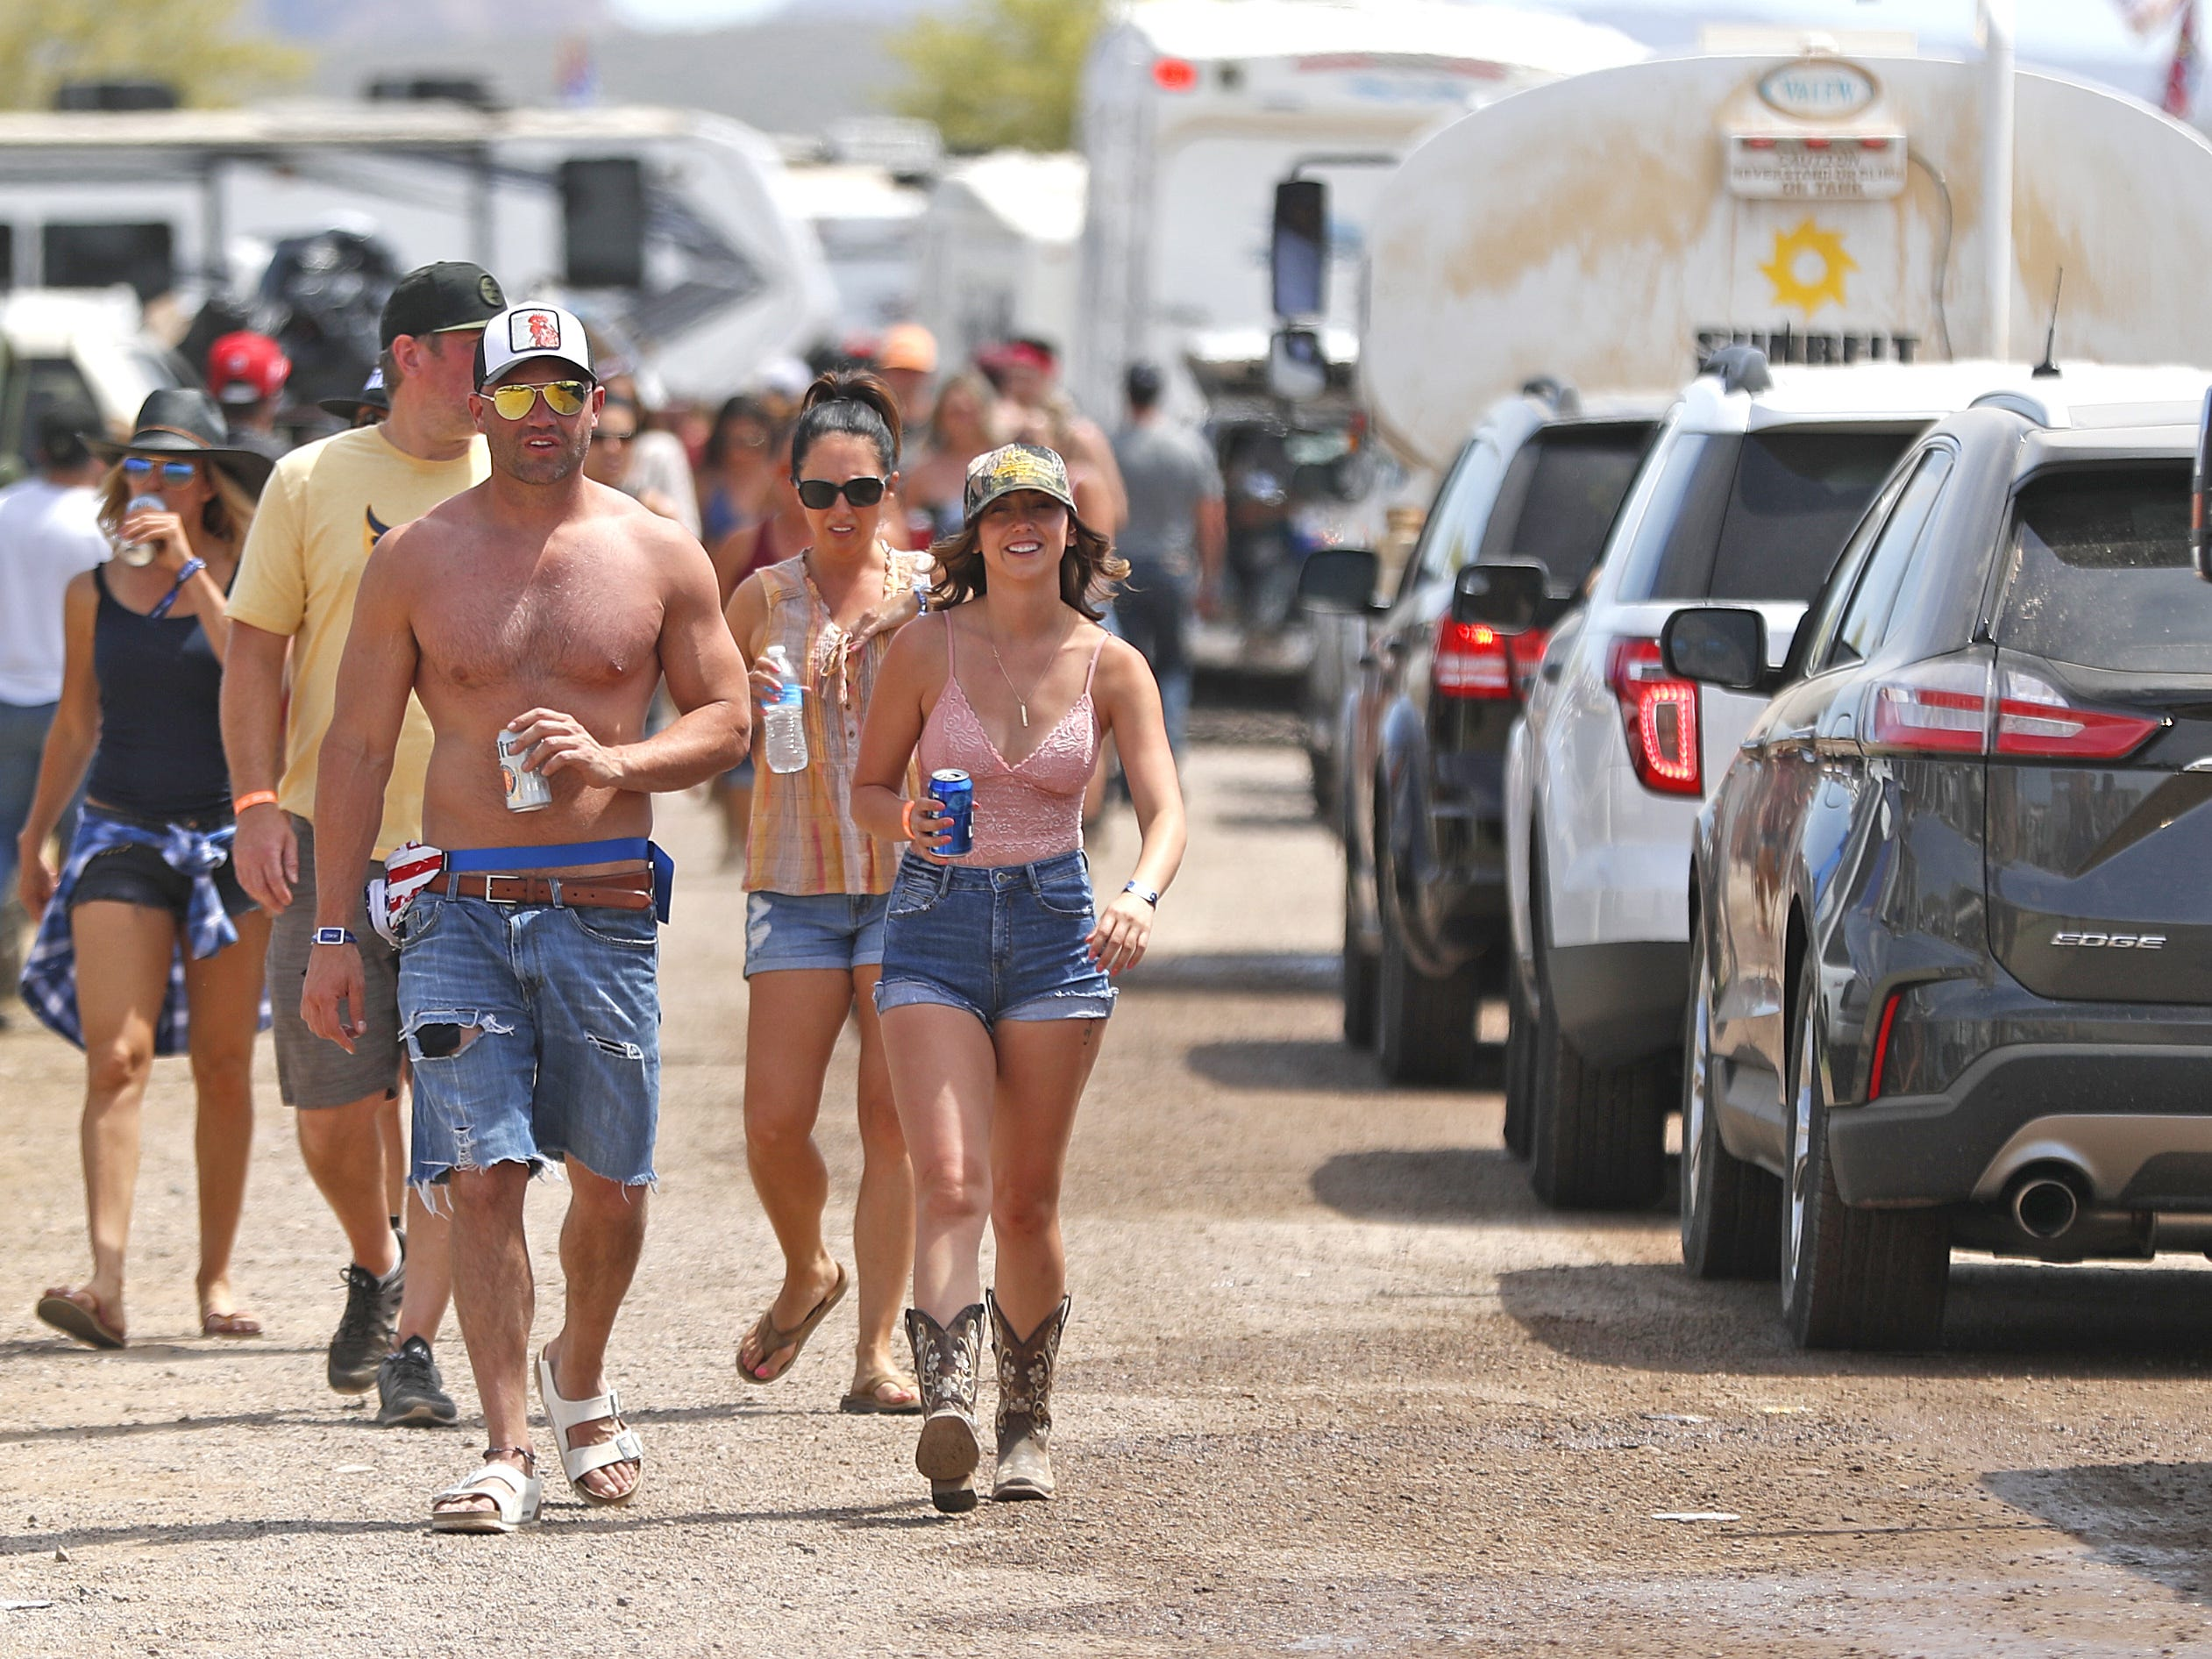 Country music fans walk the opposite direction as a line builds up of trucks and campers beginning to exit in the morning during Country Thunder in Florence, Ariz. on Sunday, April 14, 2019.